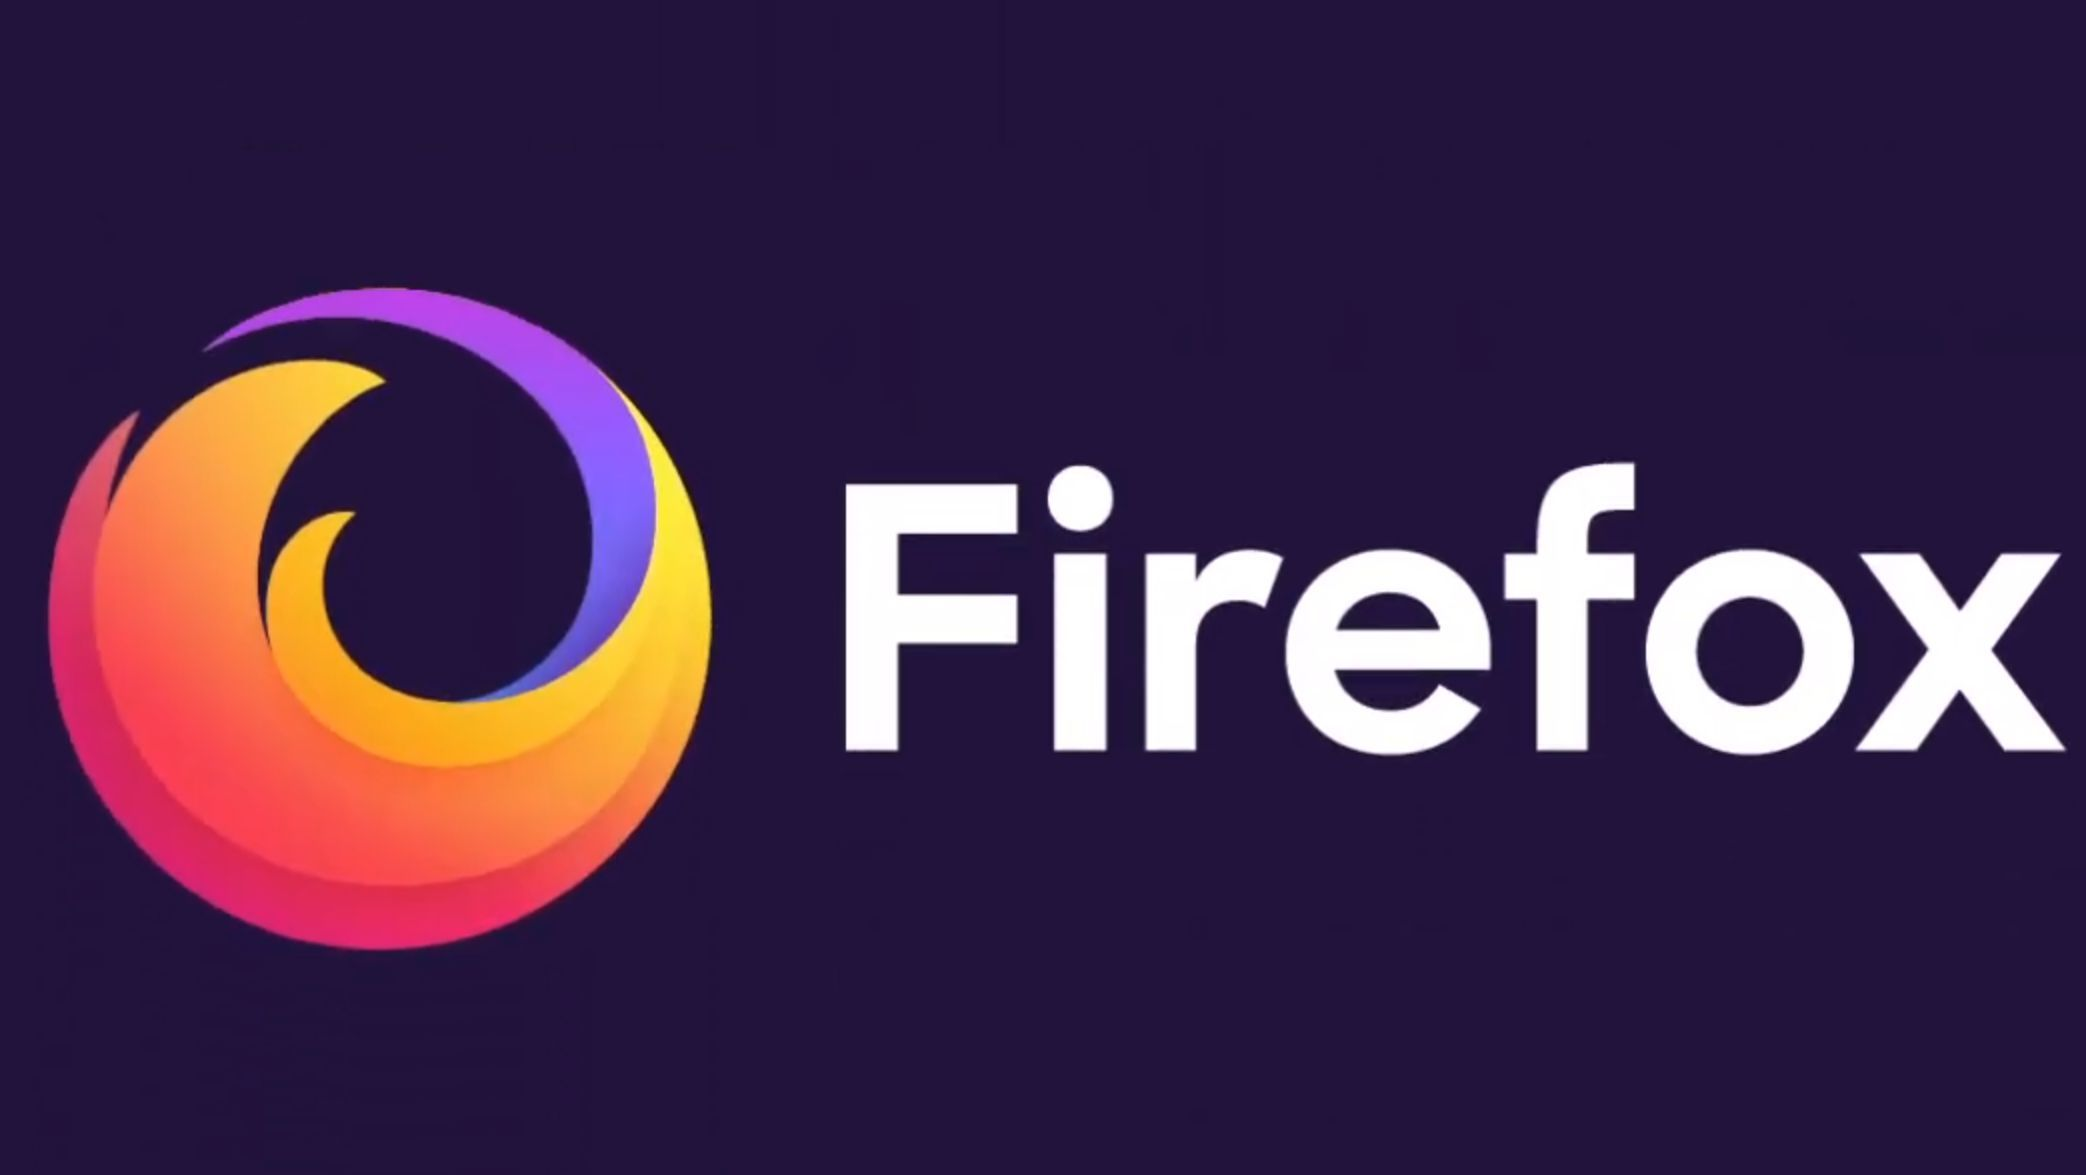 7005576c4e98fbd5ae03e7928bc73aa0 - How To Use Vpn On Mozilla Firefox